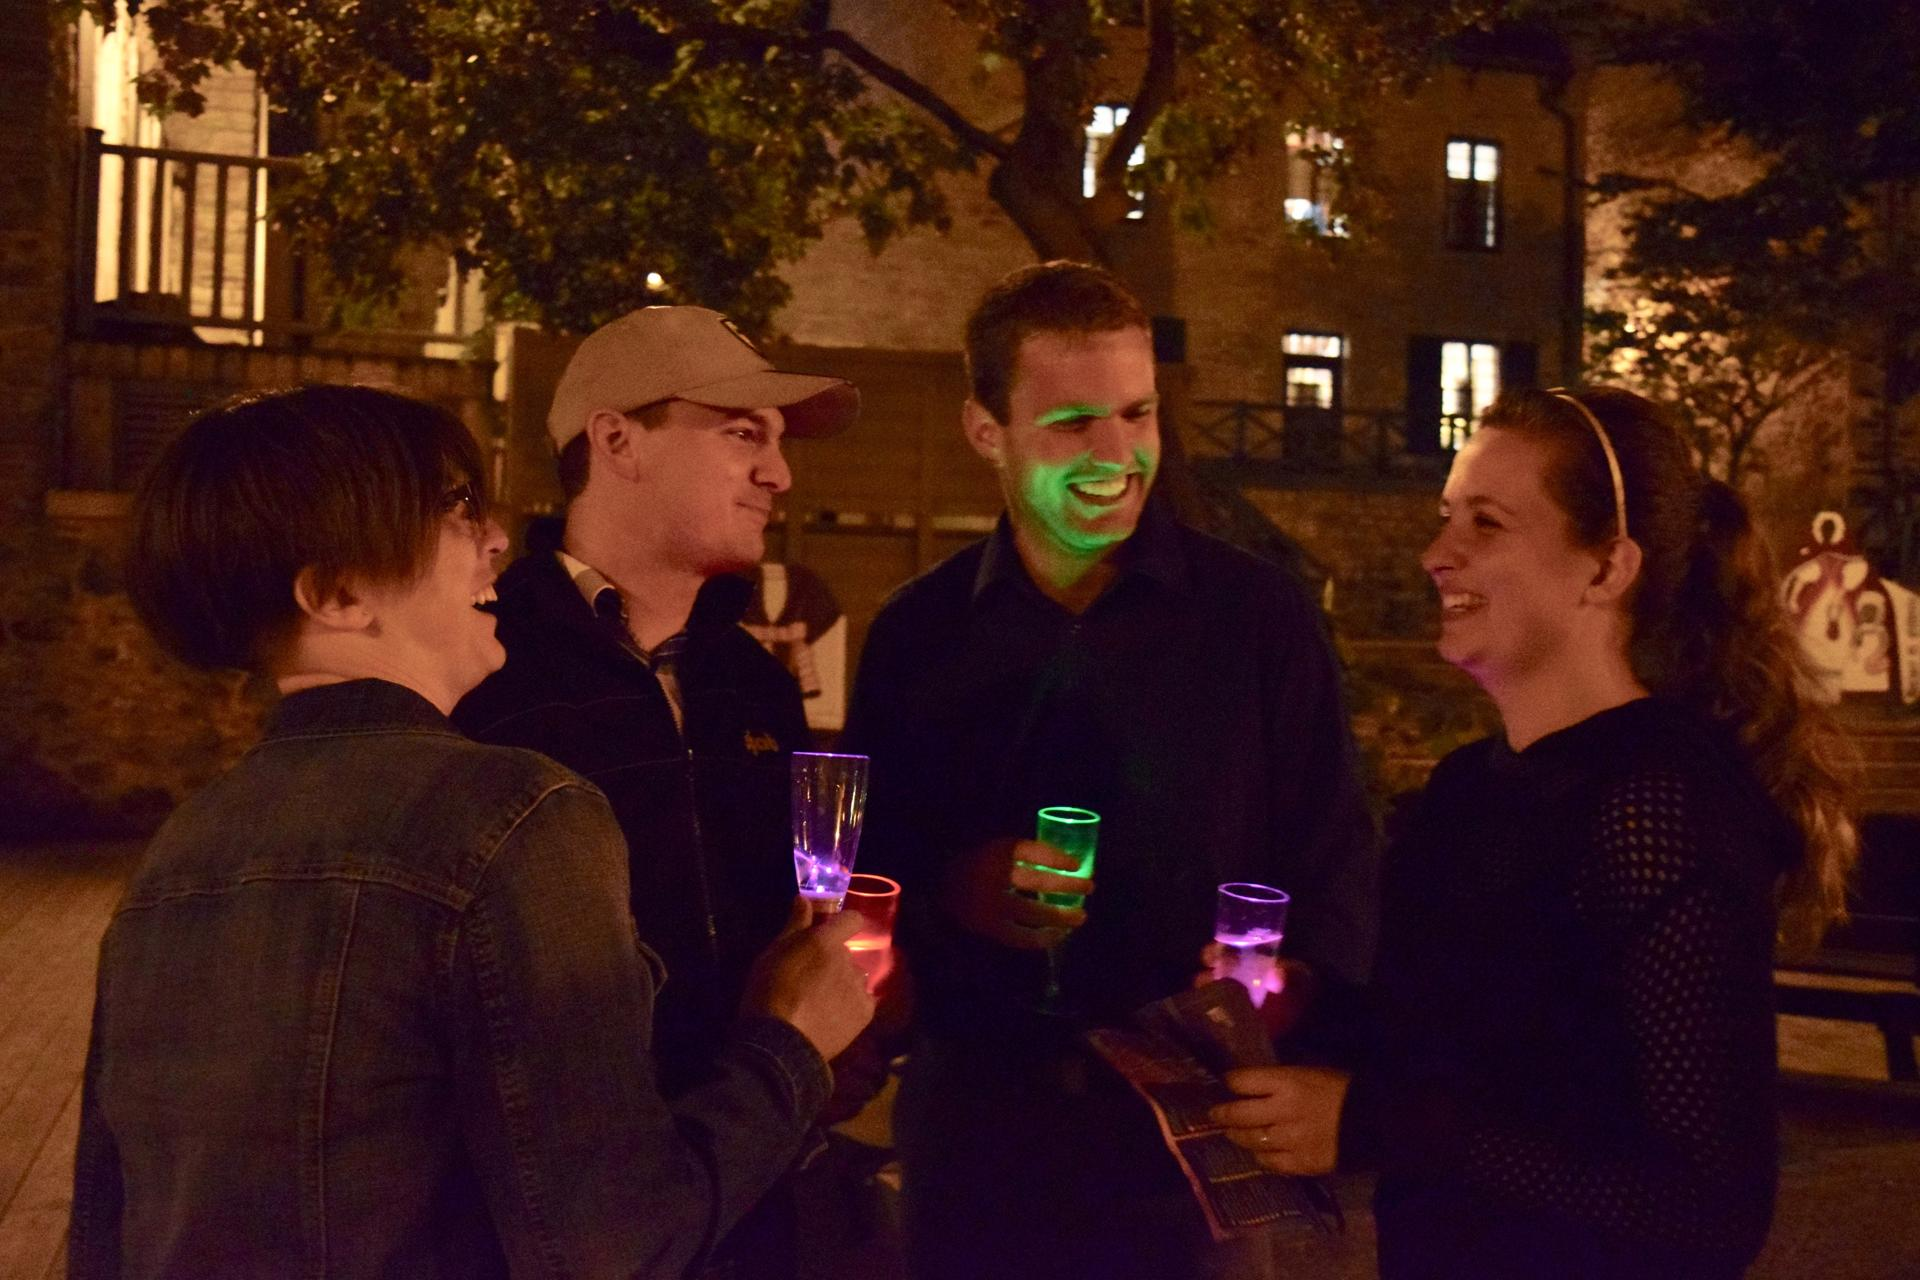 Groups drink from illuminated wine glasses during the Night of the Galleries on Sept. 16 in Quebec City. More than 35 art galleries participated in the event. Attendees could hop from gallery to gallery and fill their wine glasses along the way.